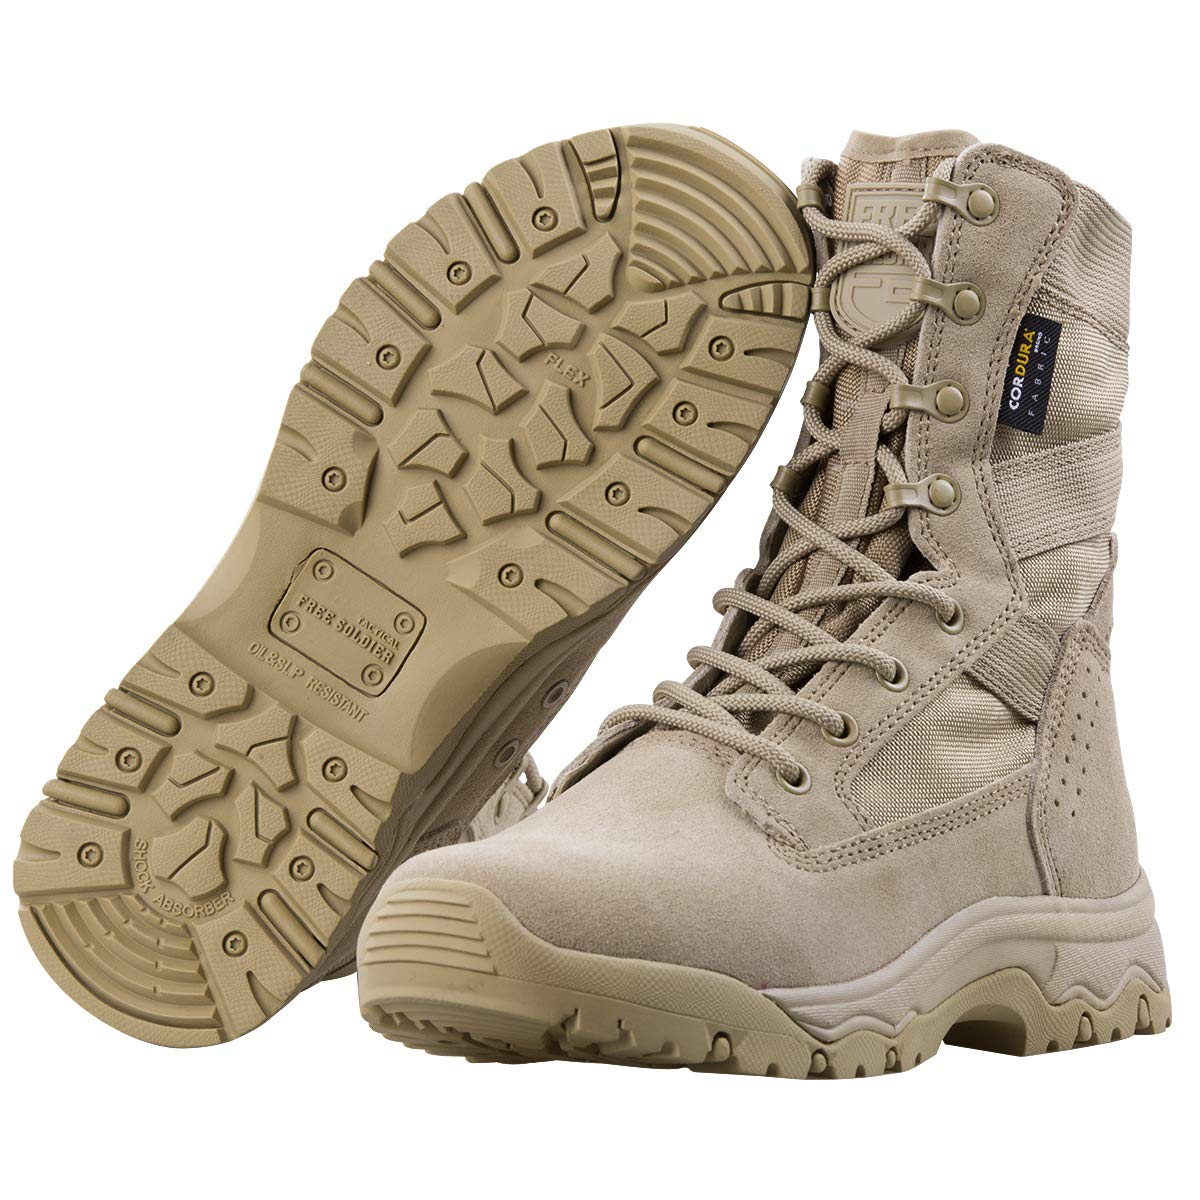 FREE SOLDIER Mens Tactical Boots 6 Inches Lightweight Combat Boots Durable Hiking Boots Military Desert Boots